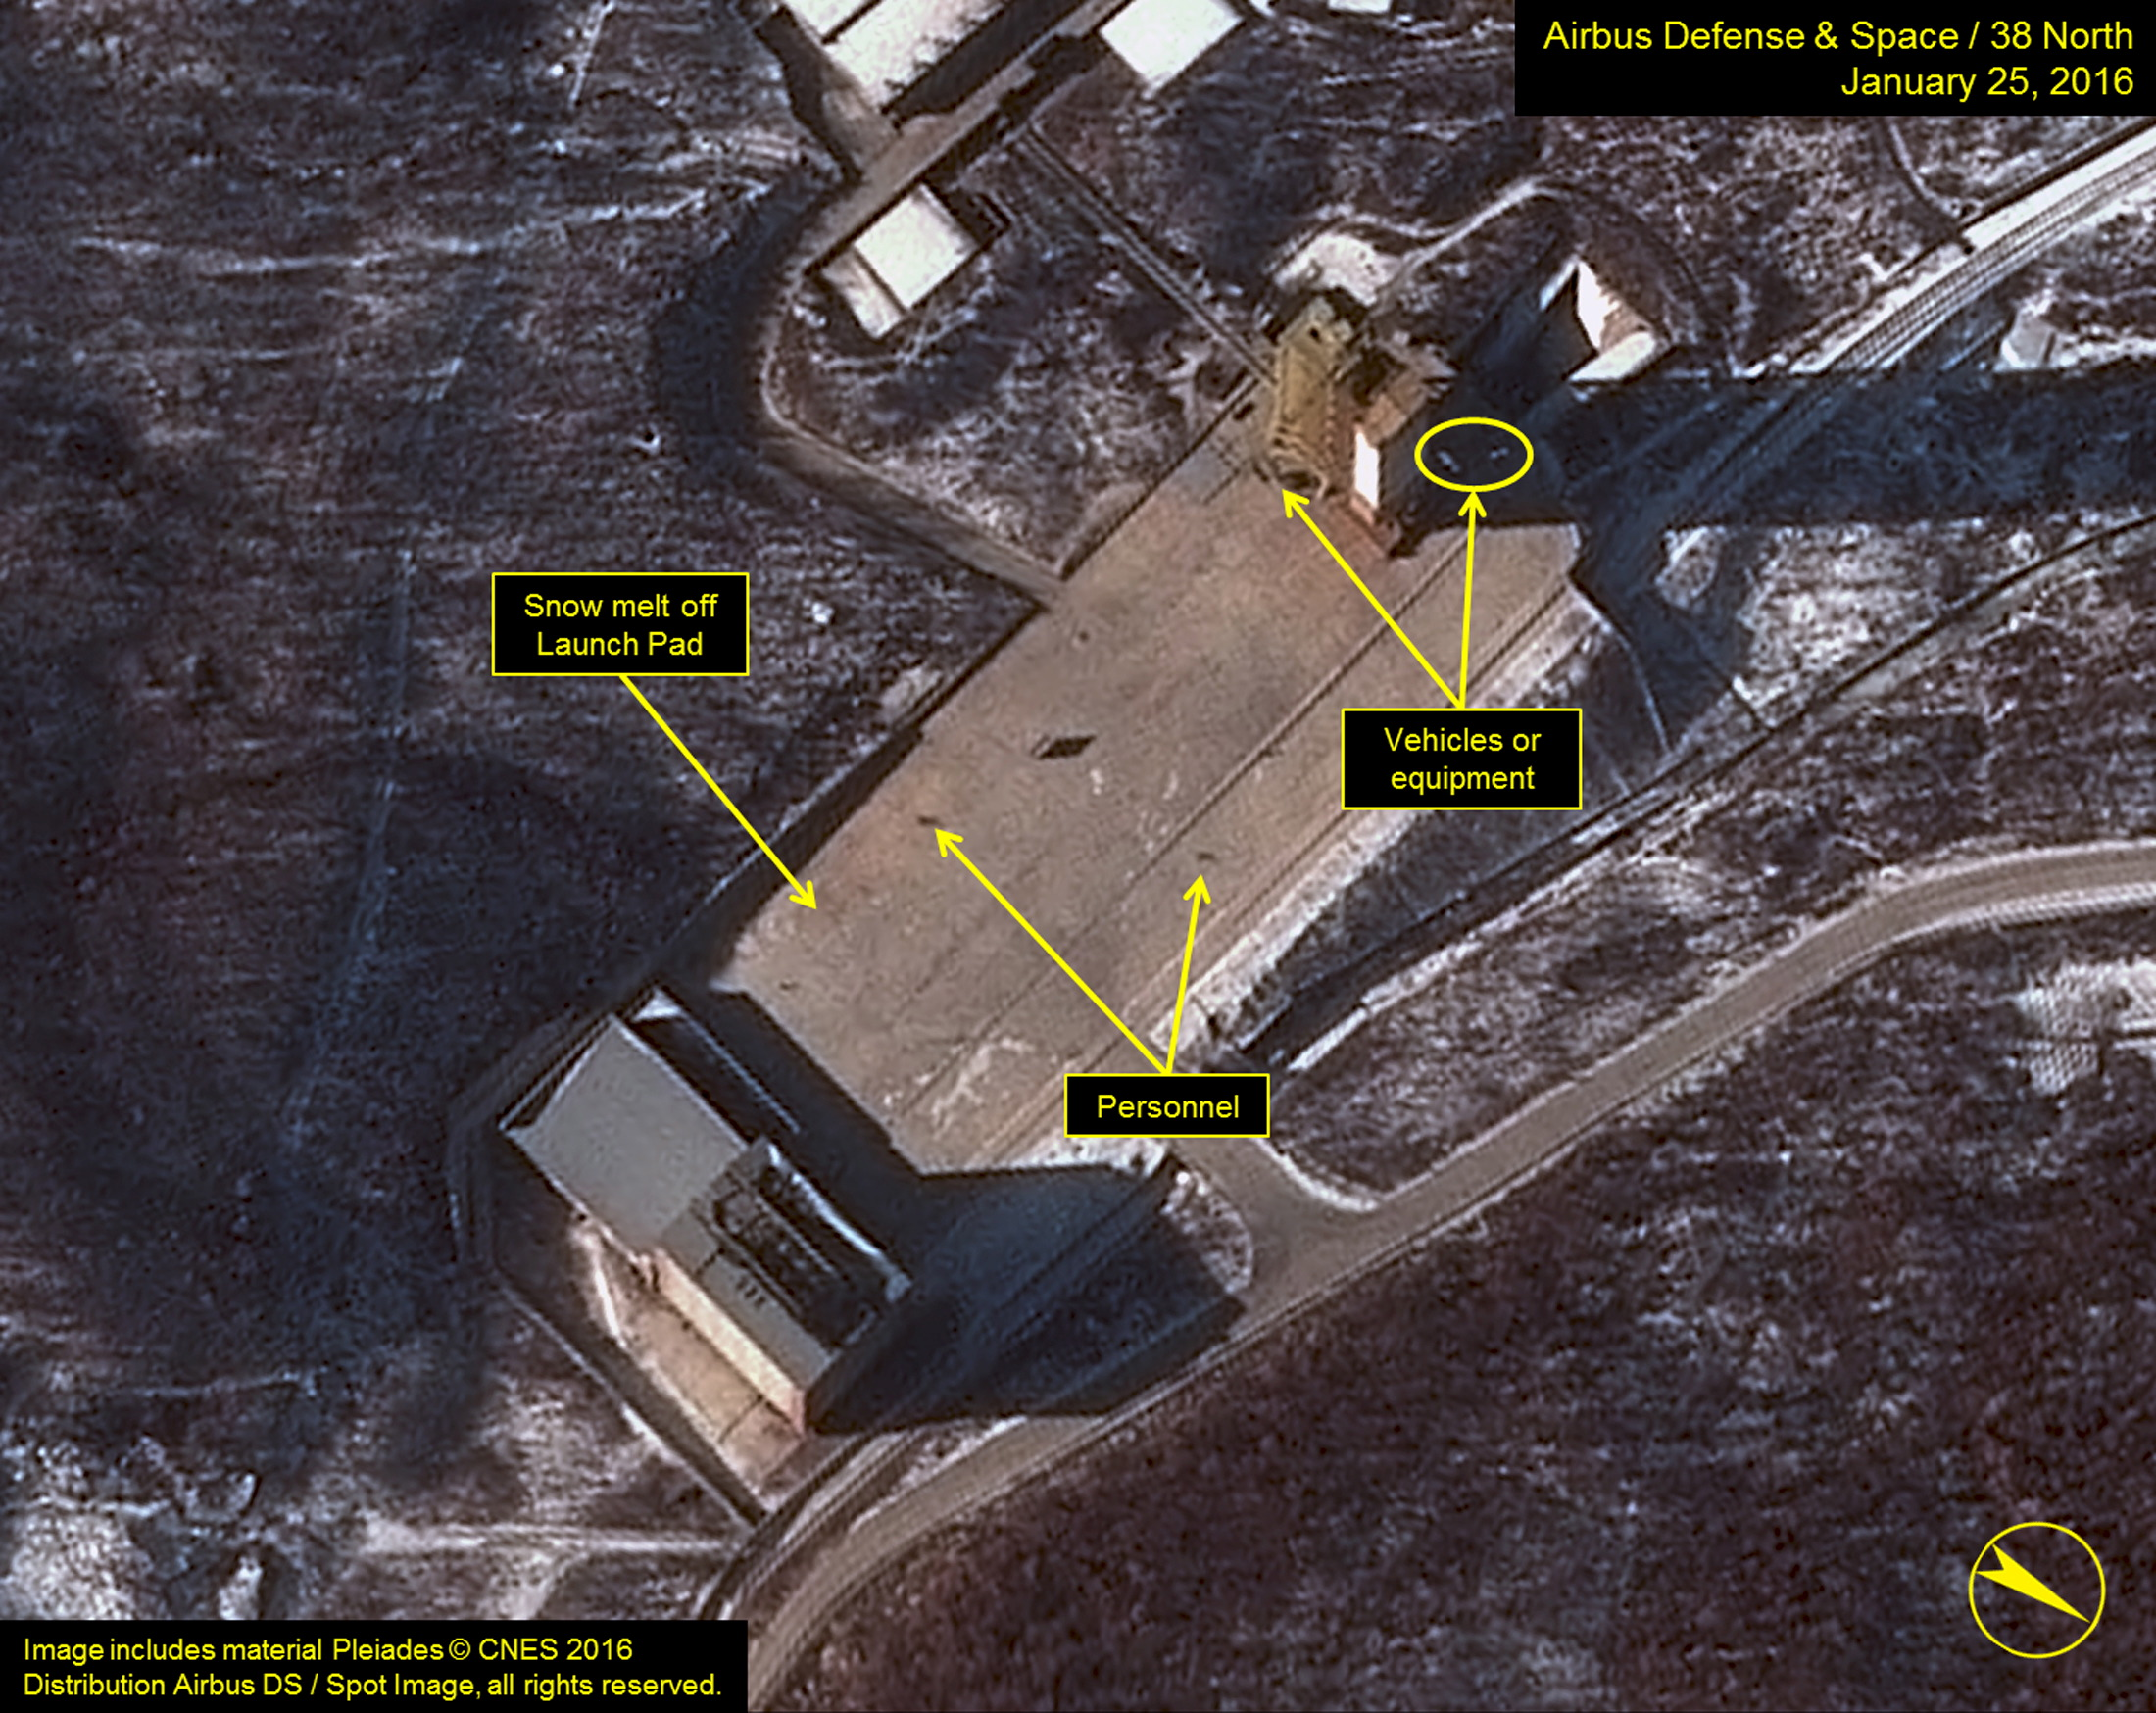 Airbus Defense satellite imagery dated Jan. 25, 2016, shows three objects at the base of the gantry tower that are either vehicles or equipment at Sohae Satellite Launching Station in North Korea